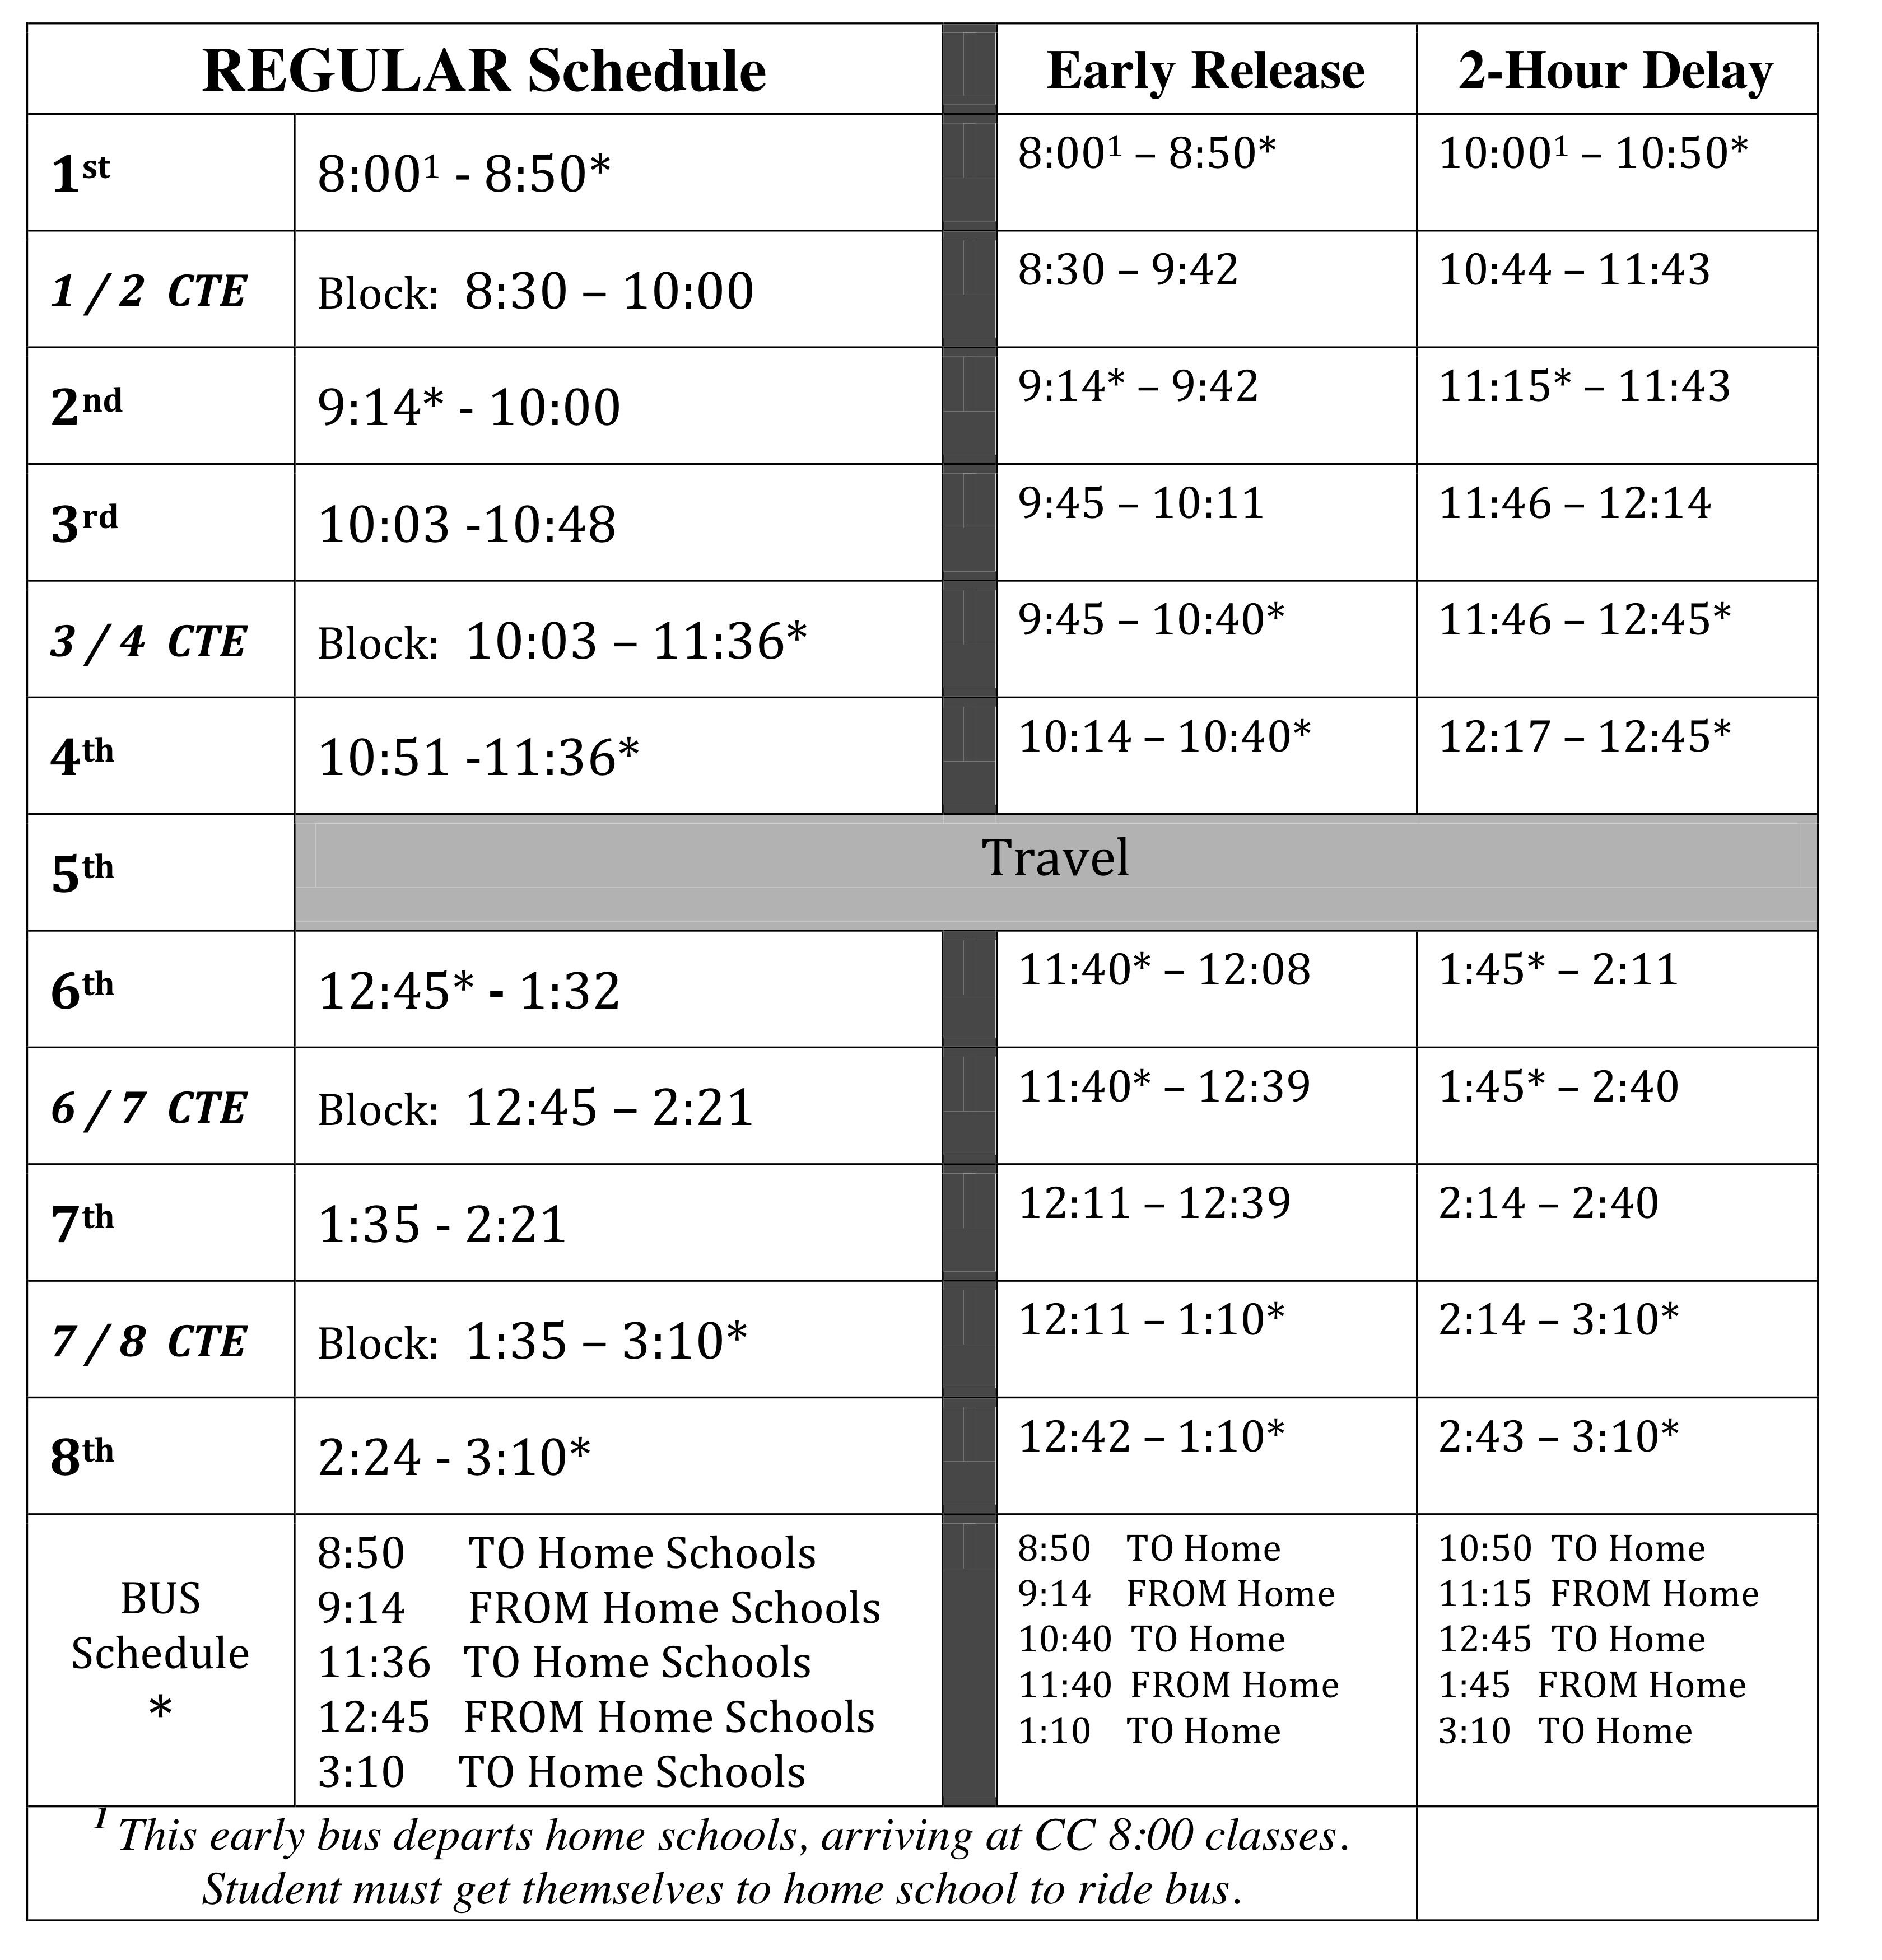 Student Handbook / Daily Schedule for Career Center